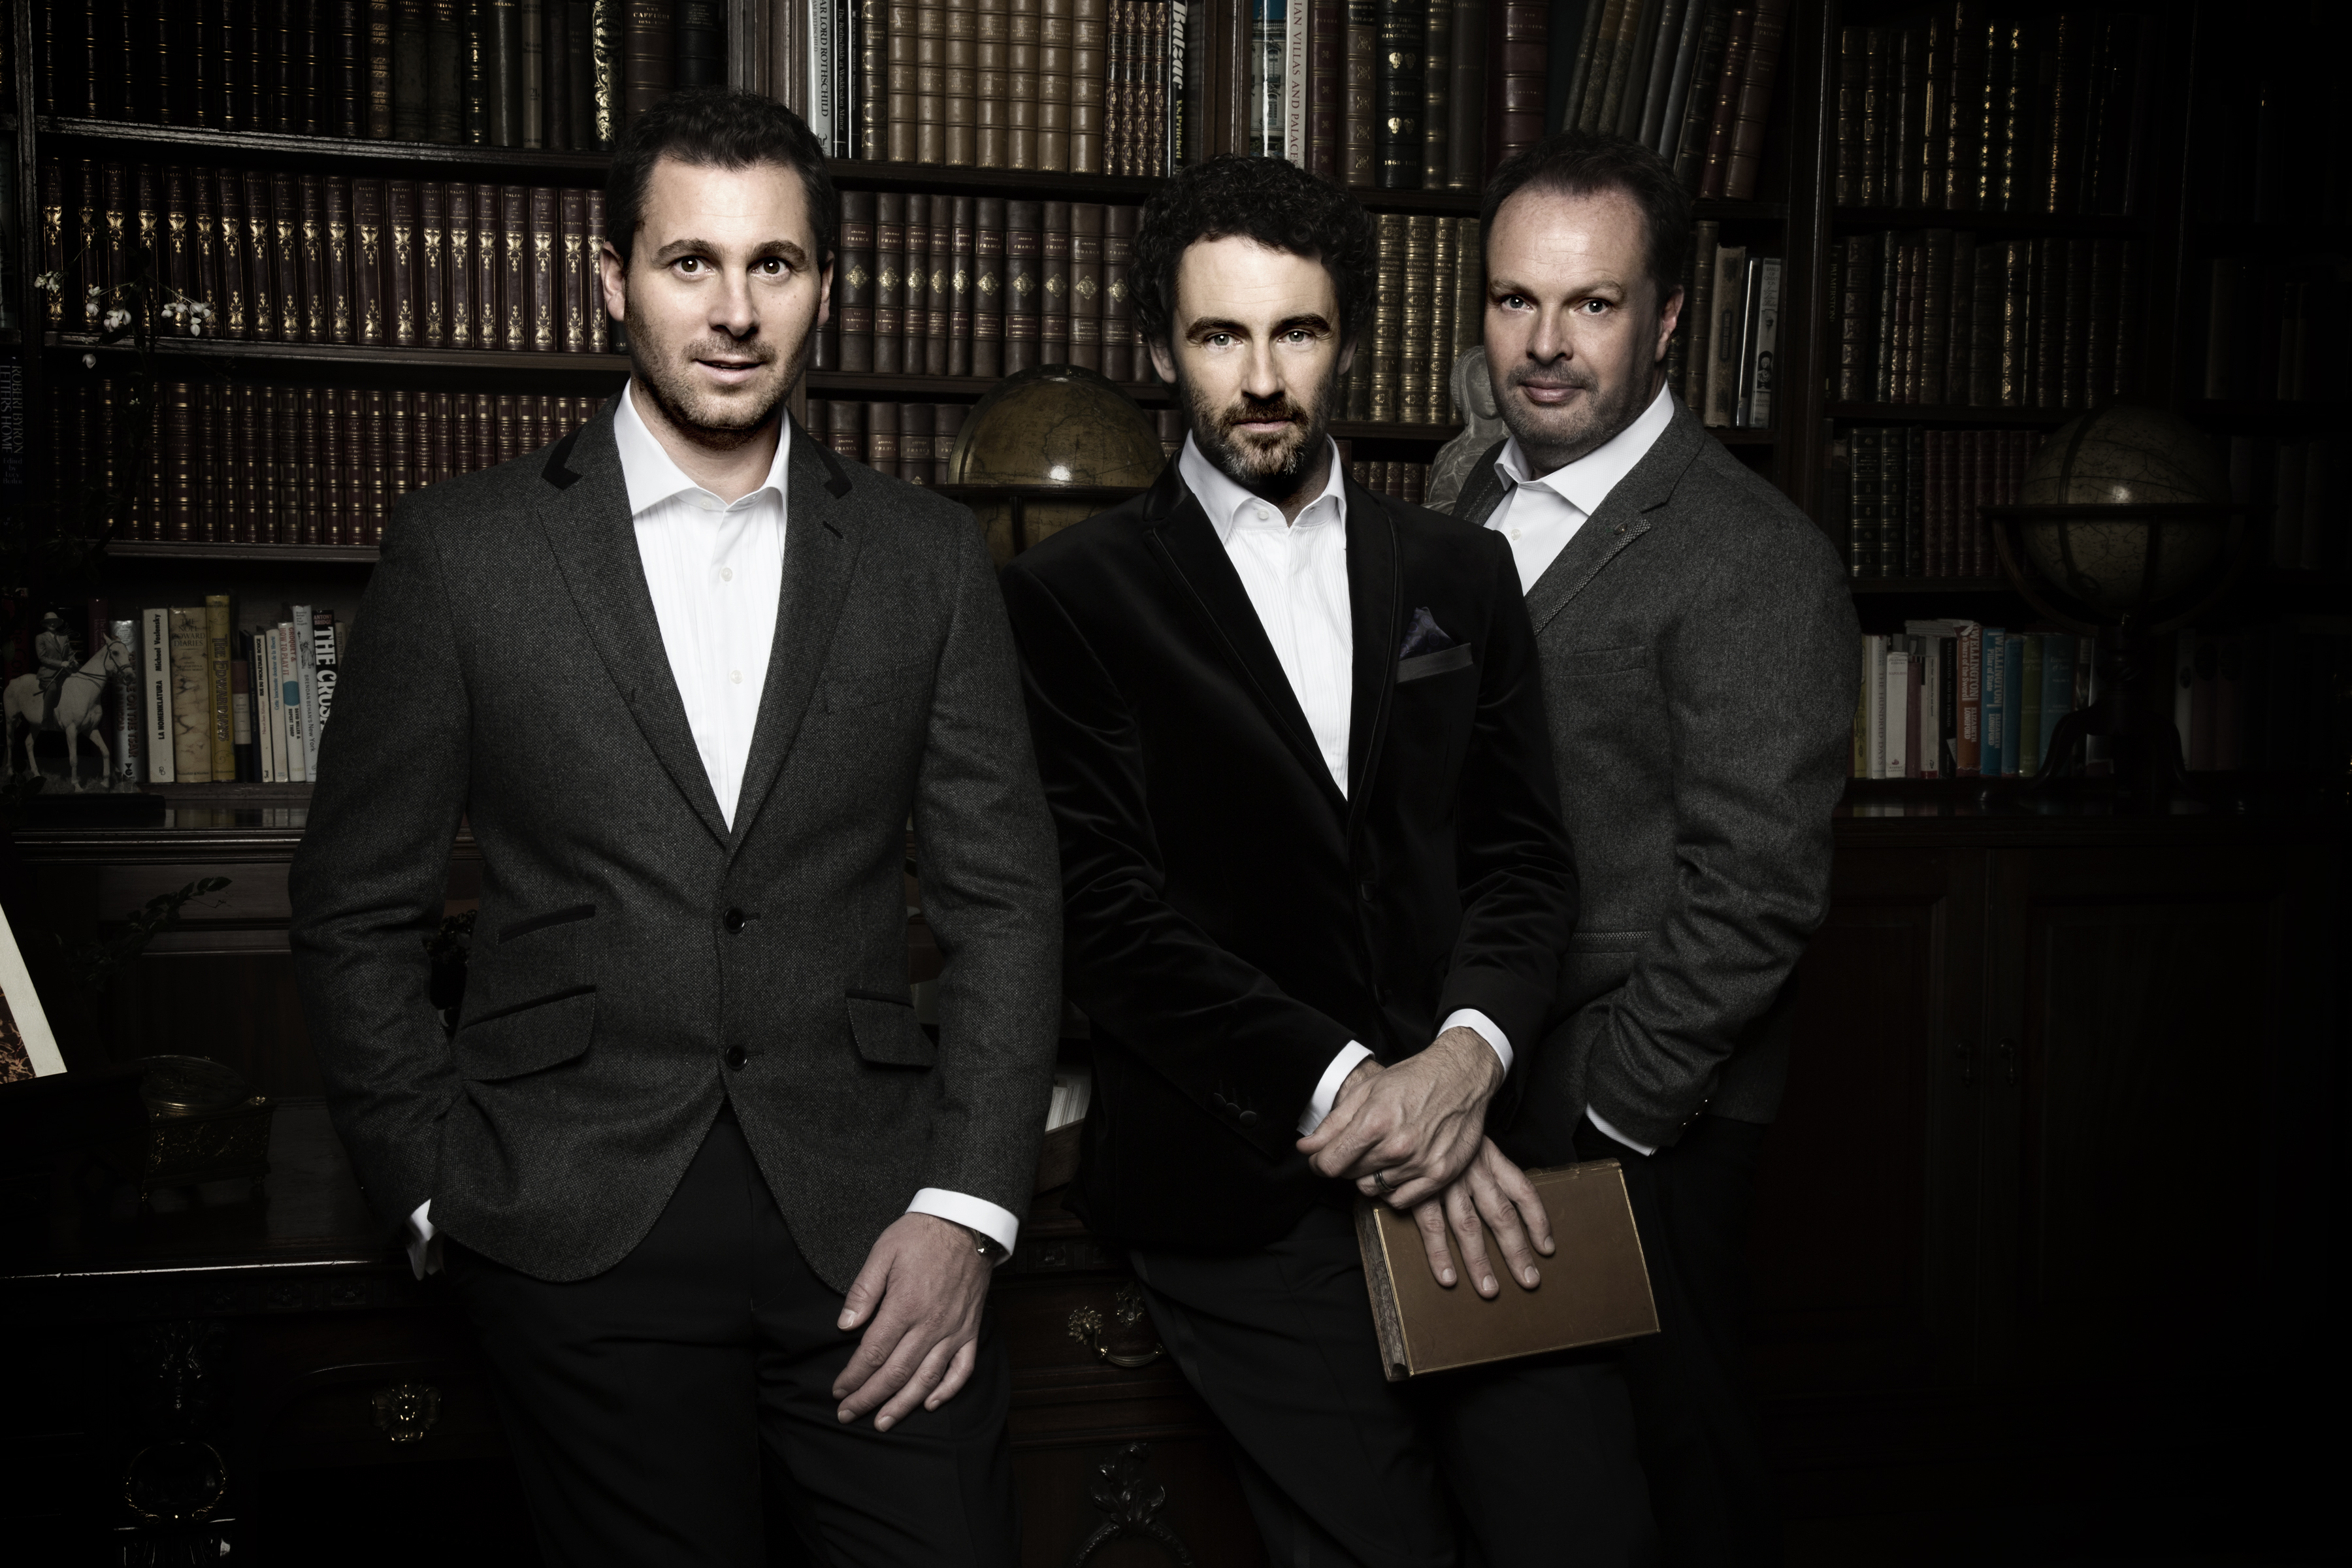 The Celtic Tenors perform Dec. 17 at the Rockwell Hall Performing Arts Center at Rockwell Hall, SUNY Buffalo State.